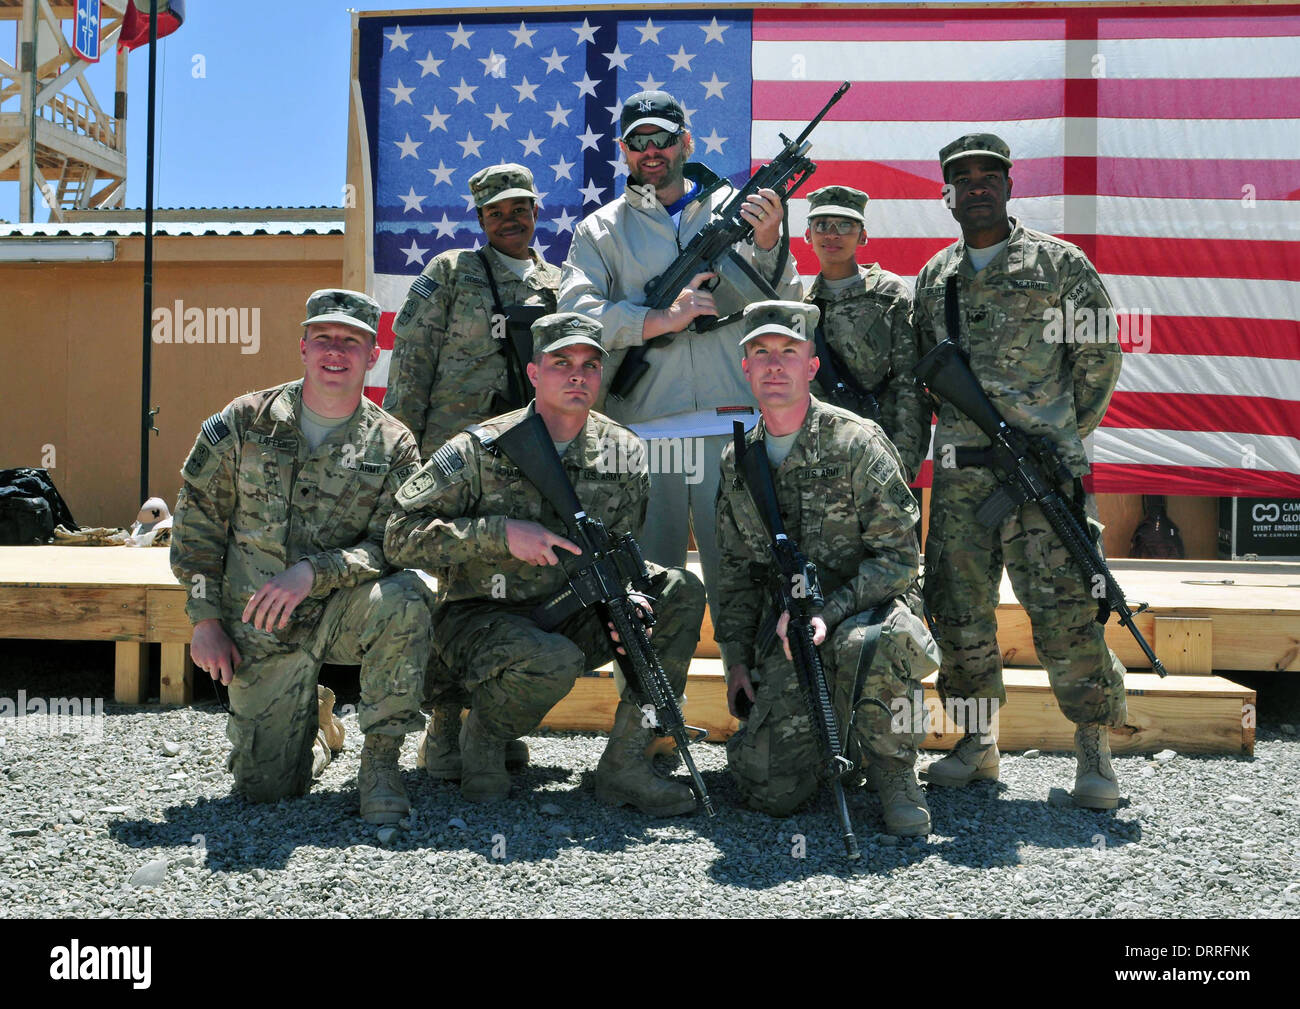 Country music singer songwriter Toby Keith poses with soldiers following a surprise concert April 29, 2012 at Forward Operating Base Sharana in Paktika province, Afghanistan. - Stock Image